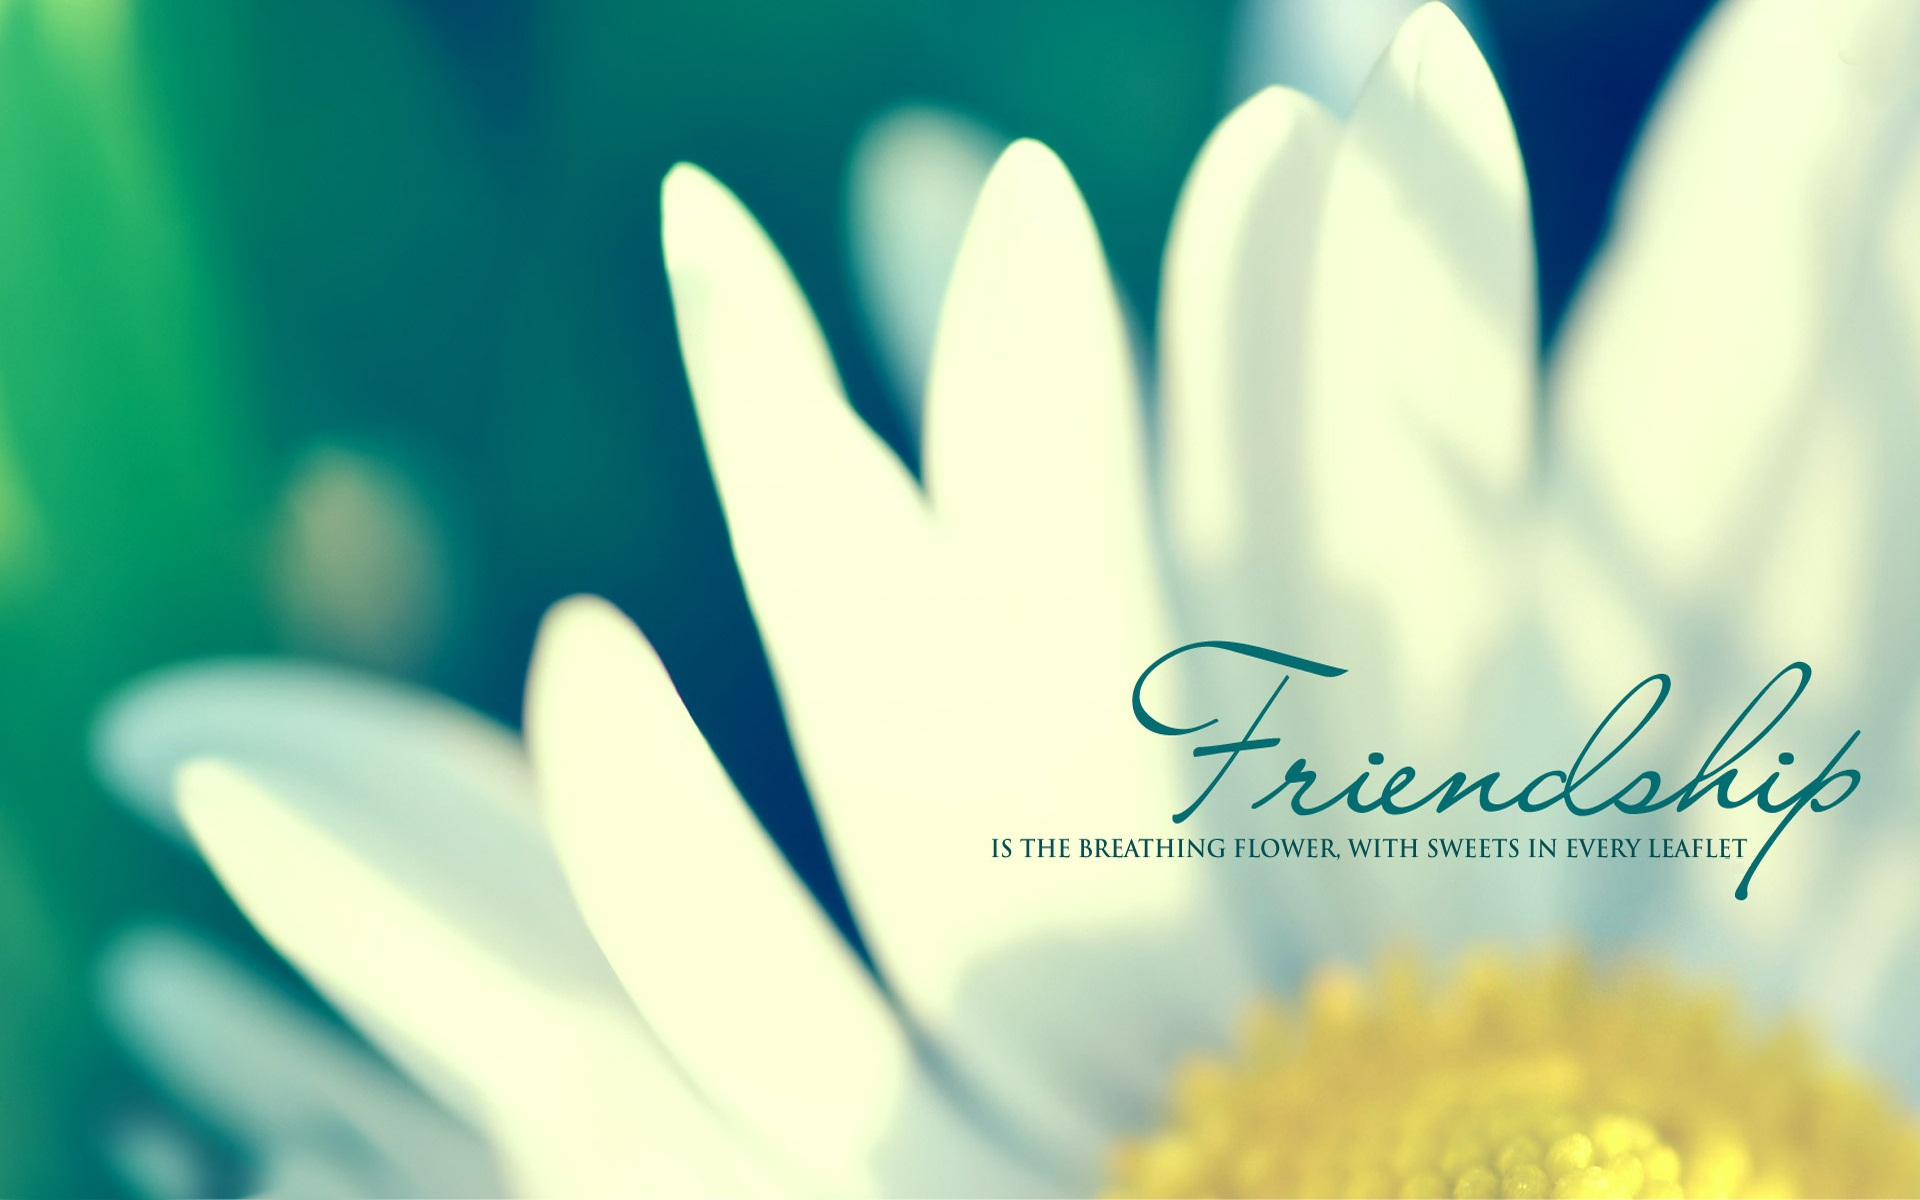 Love And Friendship Desktop Wallpaper : Friendship Quotes Desktop Backgrounds - Wallpaper, High Definition, High Quality, Widescreen